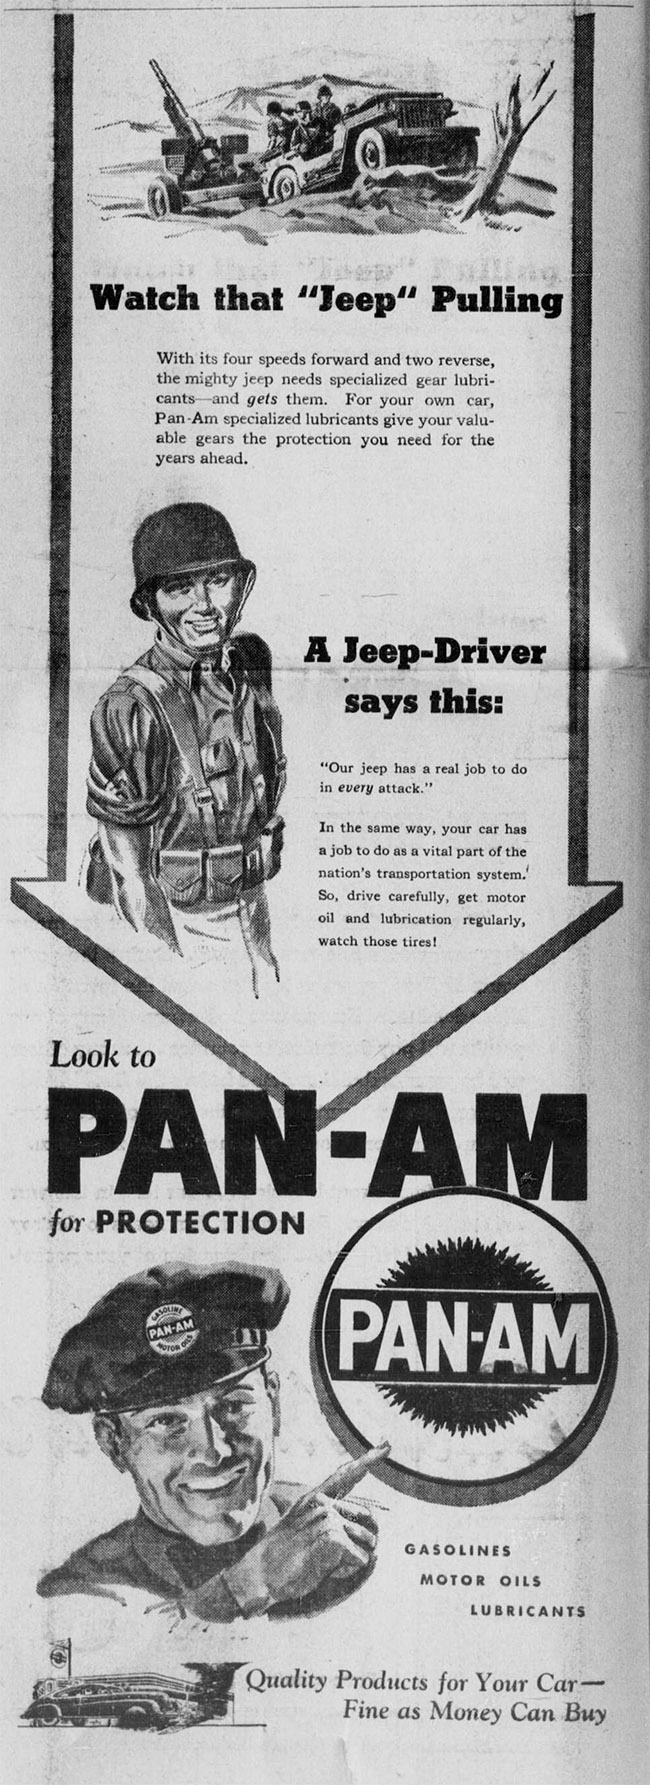 1944-06-04-chronicle-star-pan-am-lubricants-oil-lores